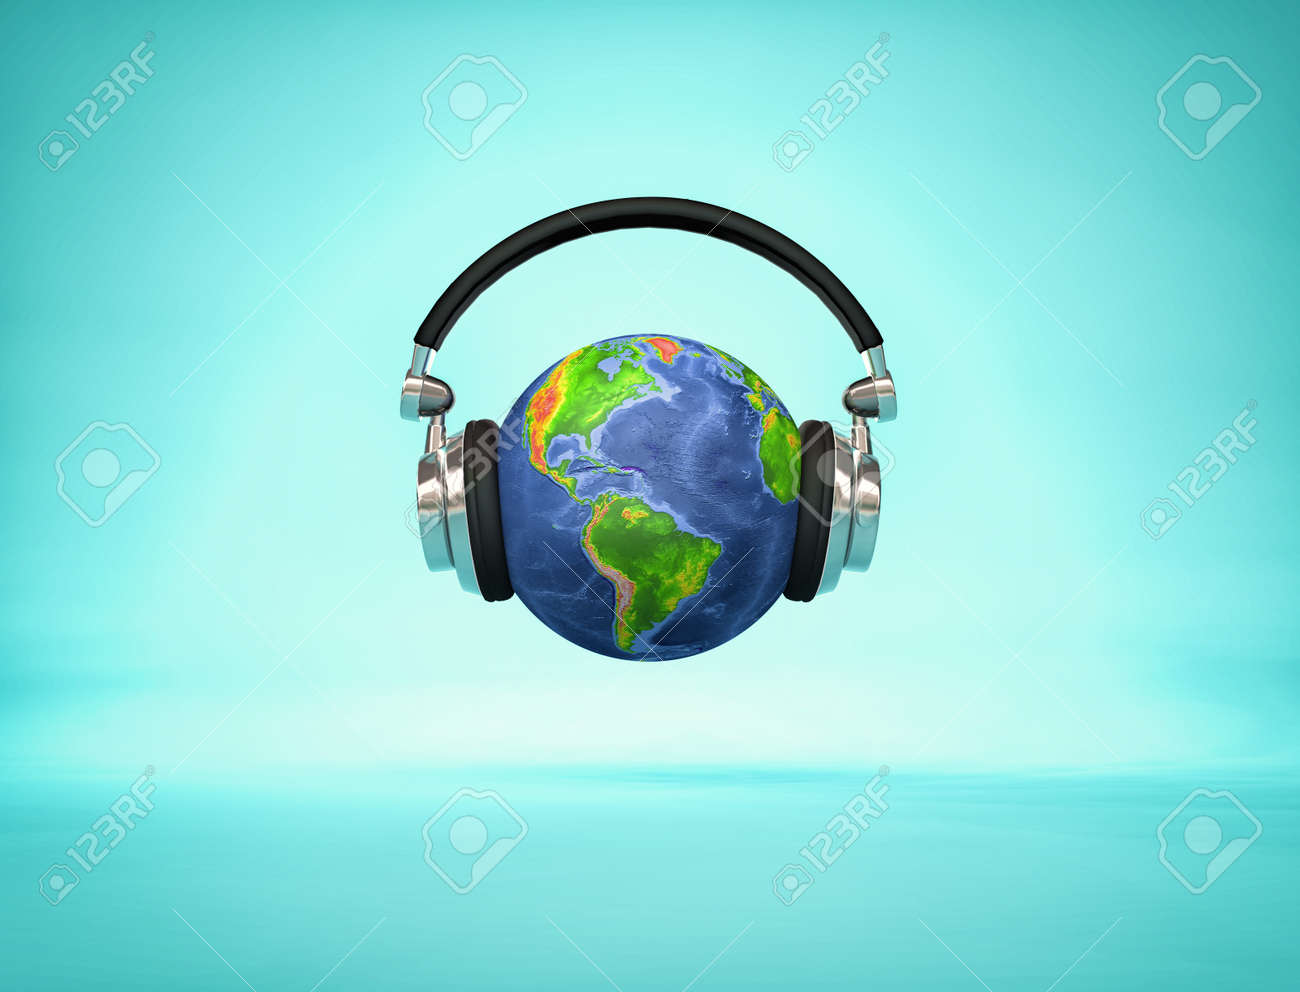 Listening the world - headphone on Earth globe showing American continents. 3d render illustration - 87600946